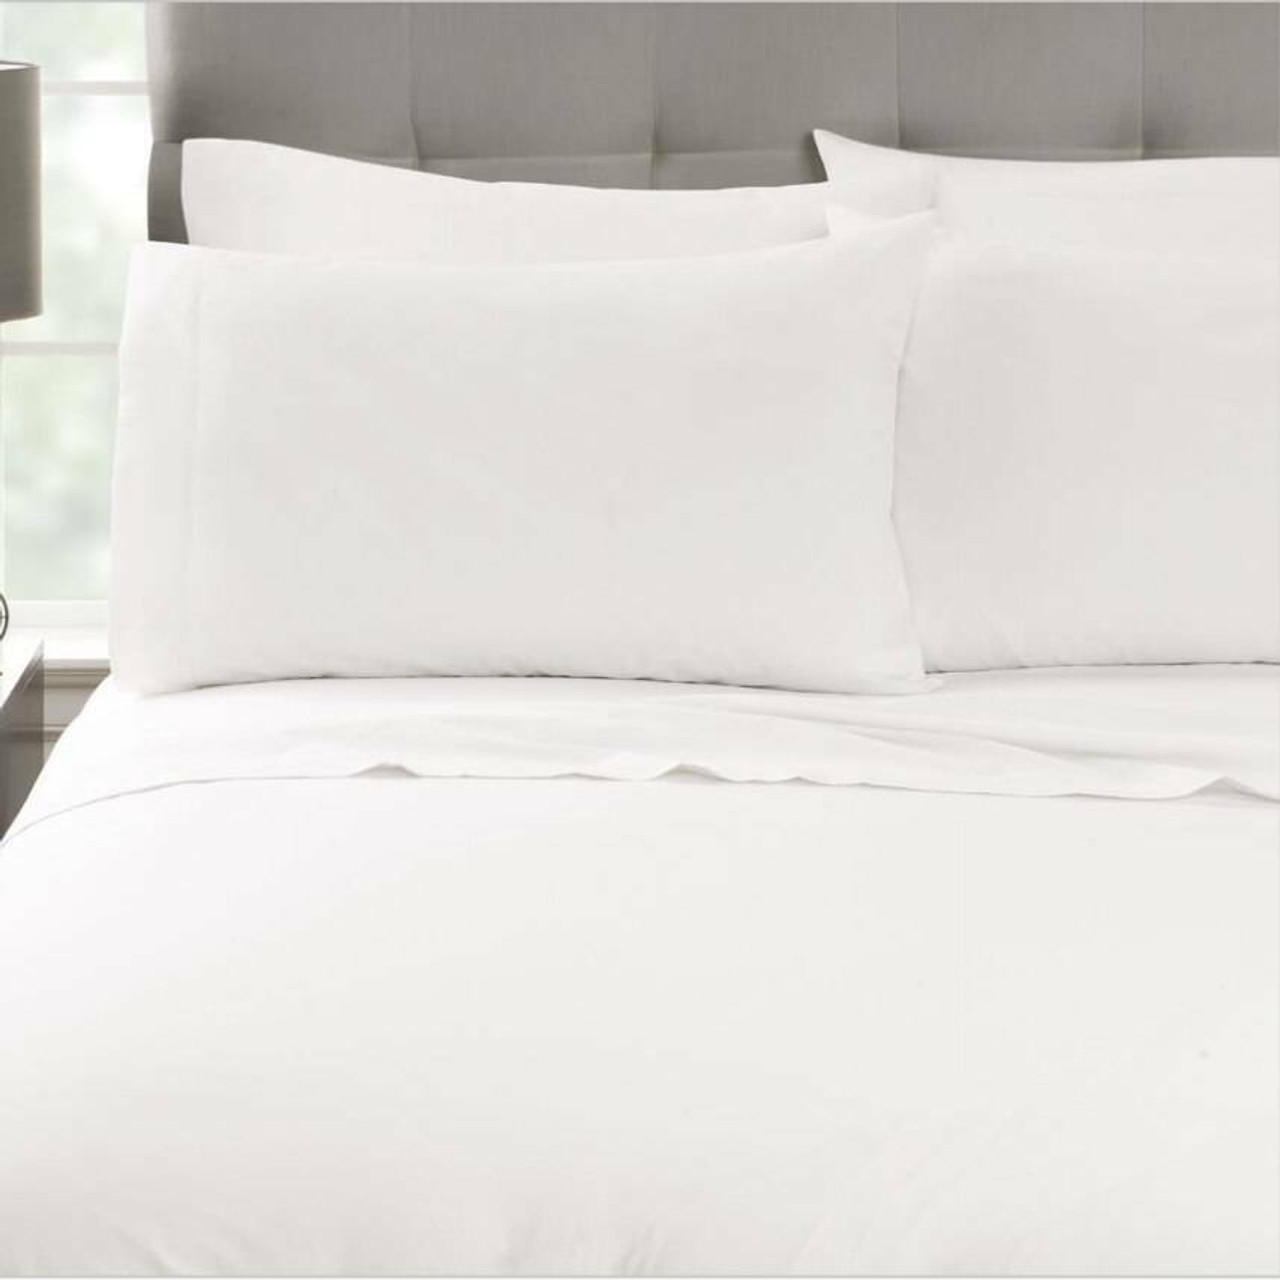 Martex Millennium or Sheets or WestPoint Hospitality Martex Millennium Duvet Cover, Shams and Bedskirts or Solid and Stripe